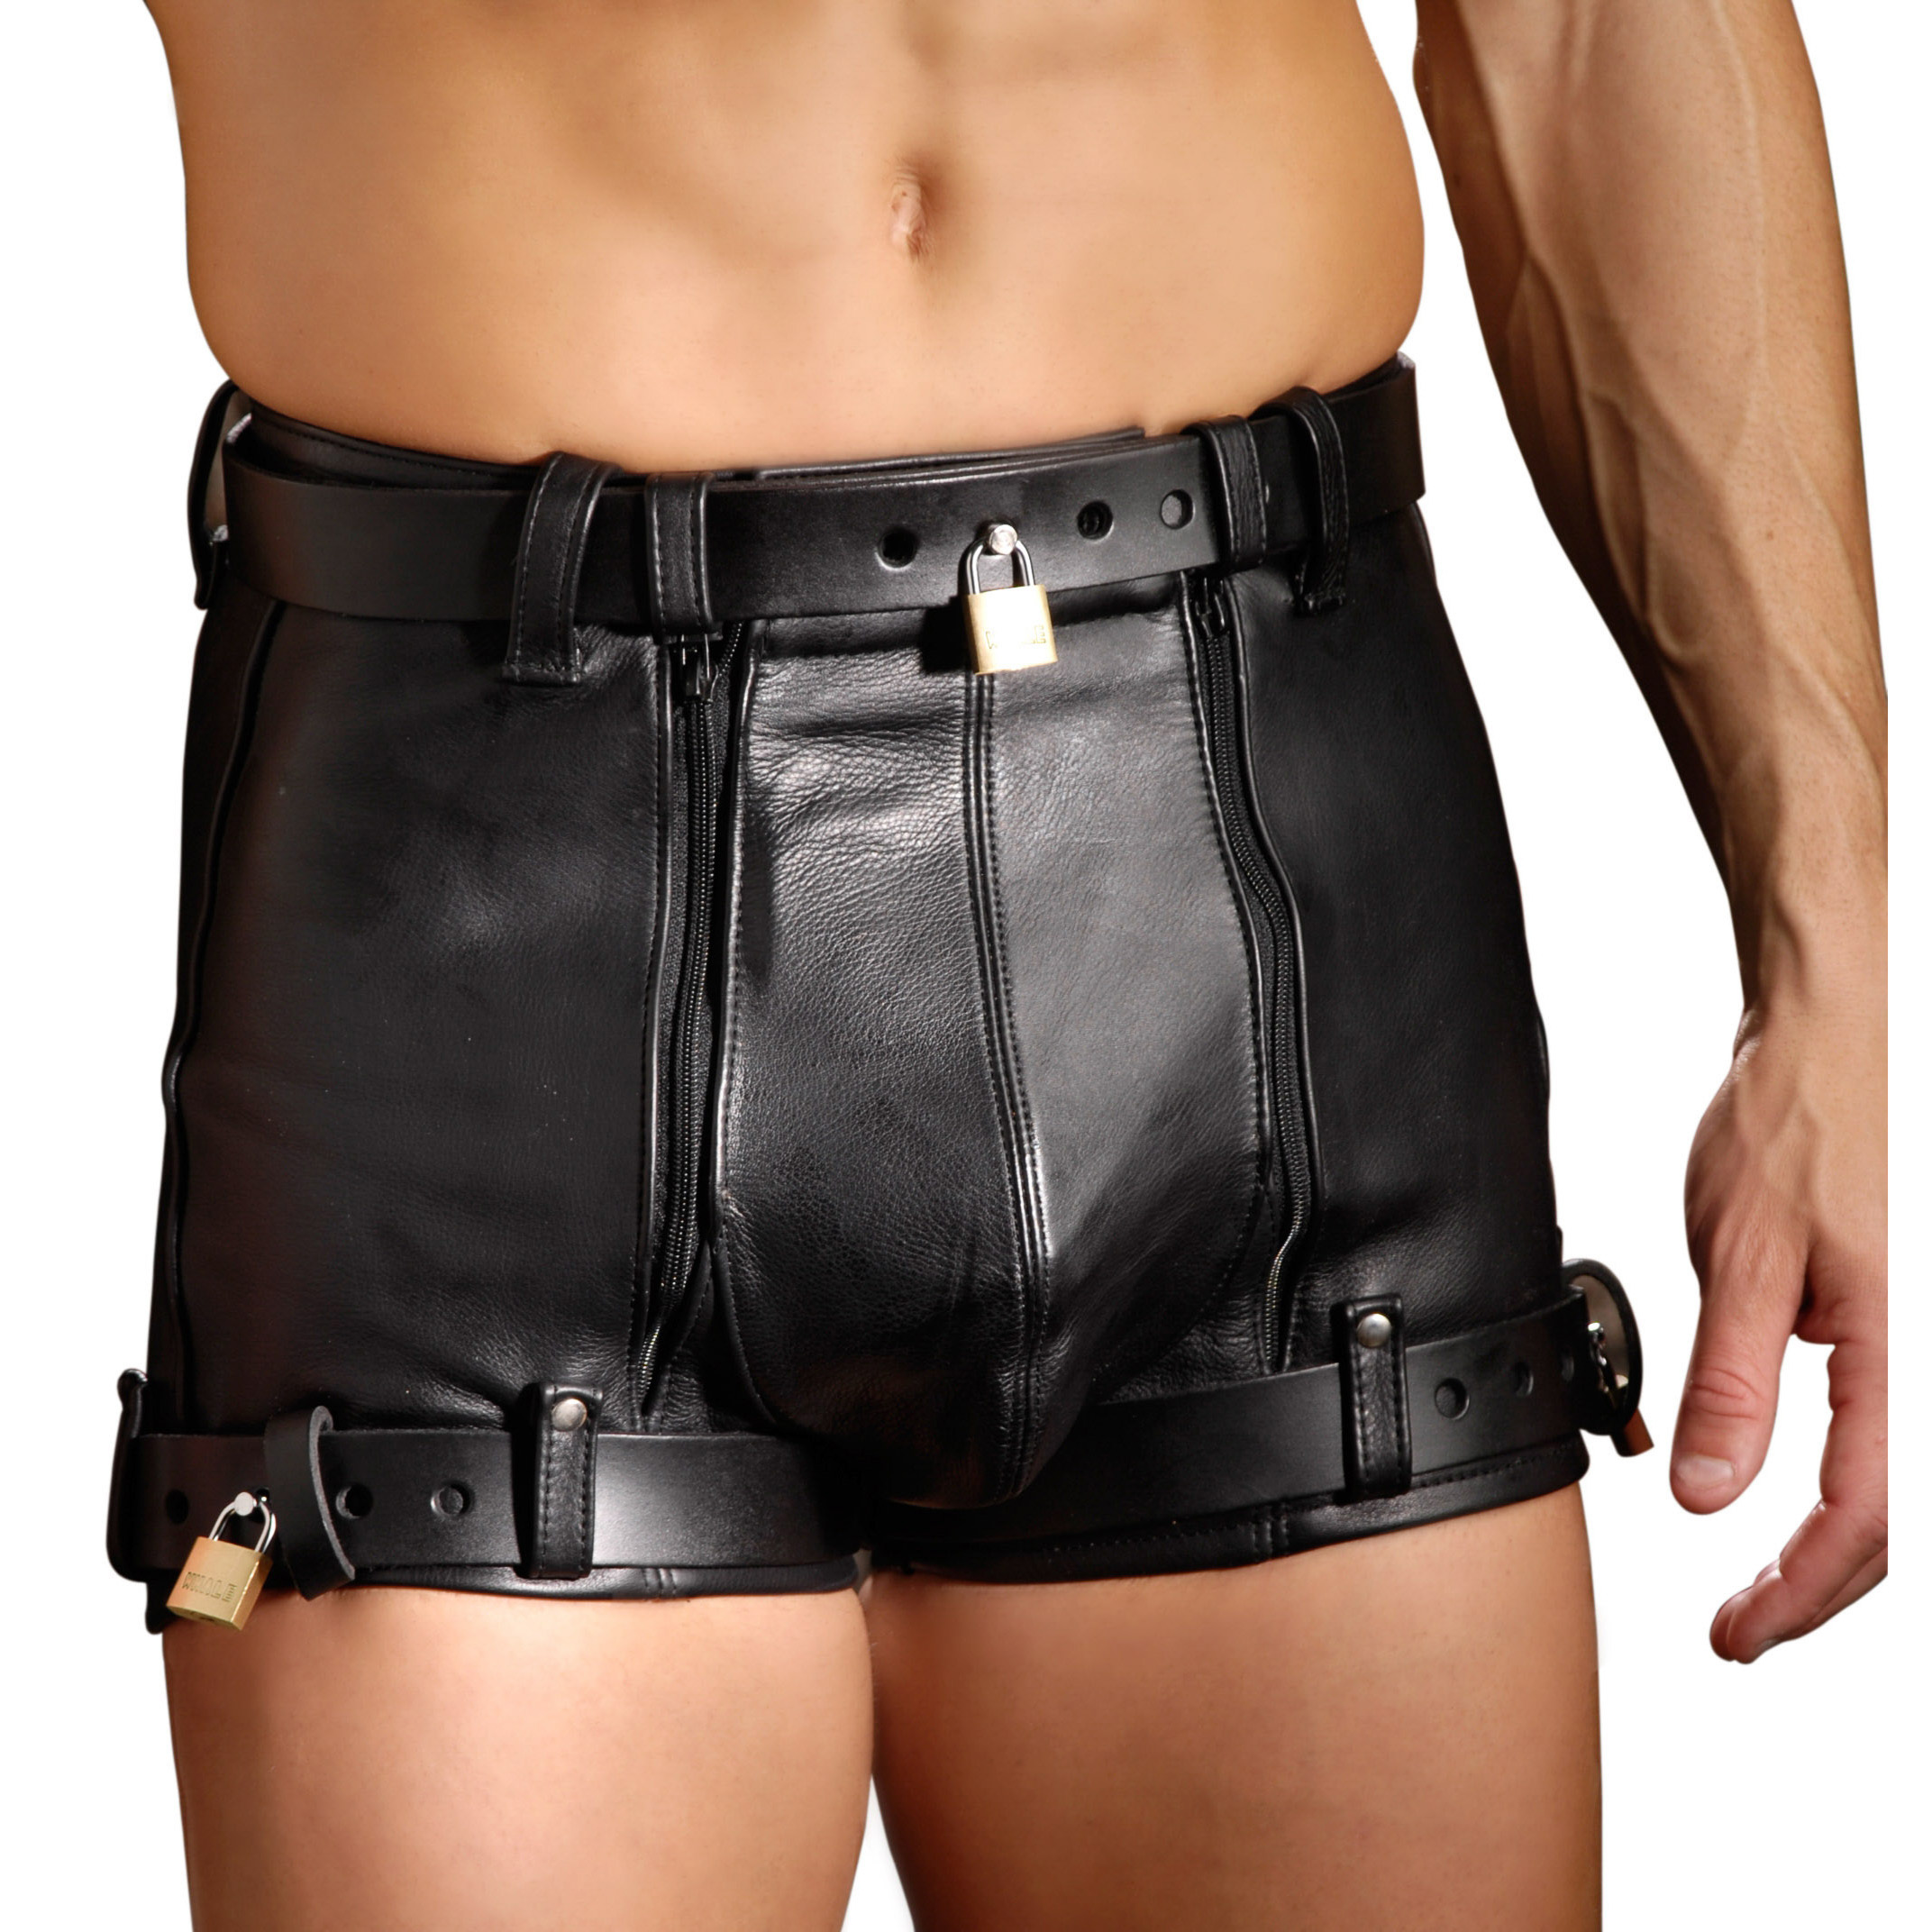 These high quality hand crafted leather chastity shorts from Strict Leather are must own for any chastity enthusiast. This is the perfect item to keep your slave or scum boyfriend/husband from getting to his own cock. Made with premium leather these chastity shorts are soft to the skin and are very durable. Perfect for extended use and to keep their penis on lockdown.